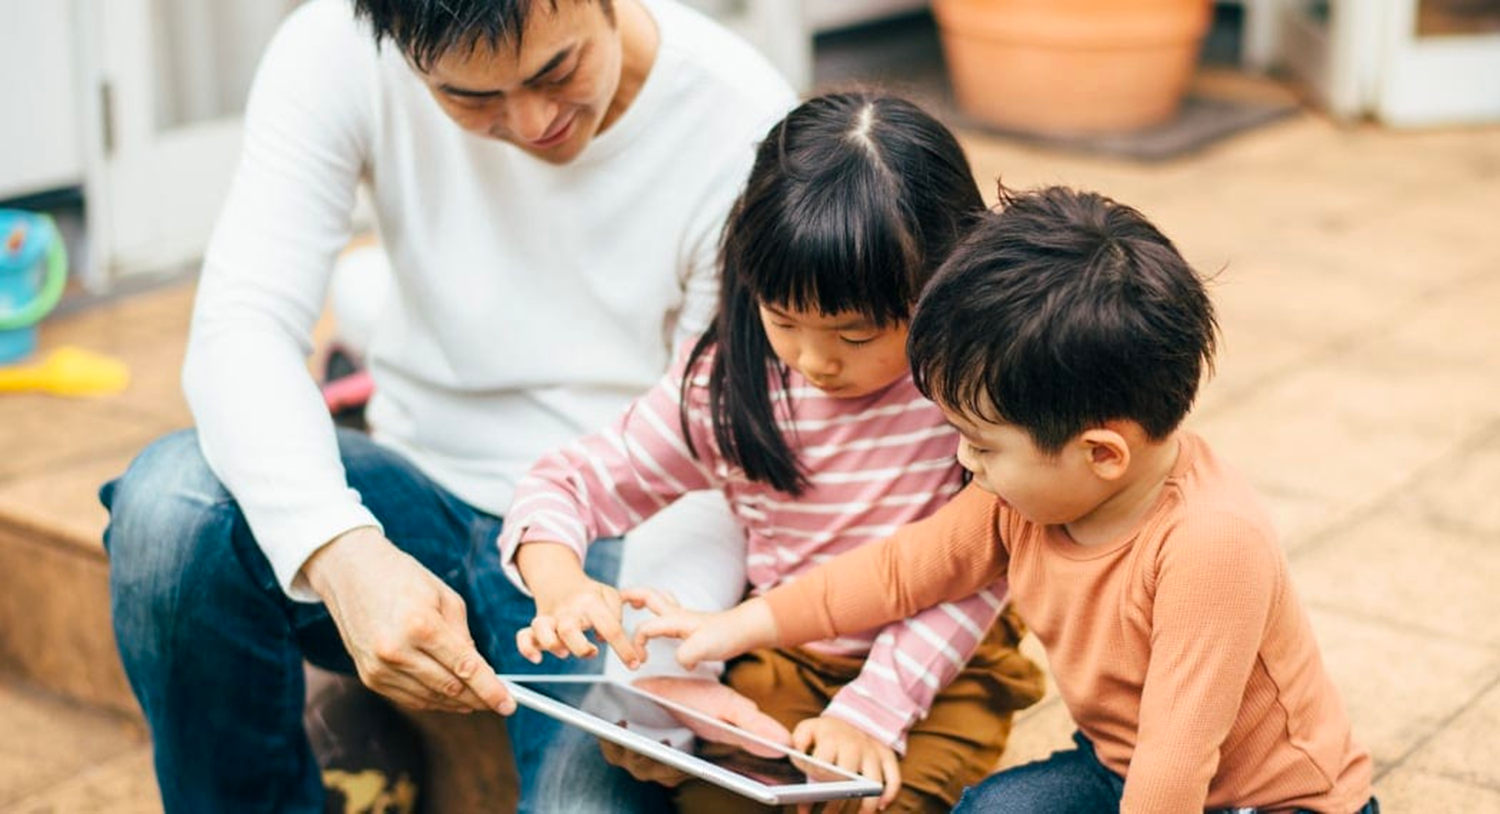 Amid continued school closures, Rakuten is extending free provision of its recently launched English-learning tool Rakuten ABCmouse in Japan.